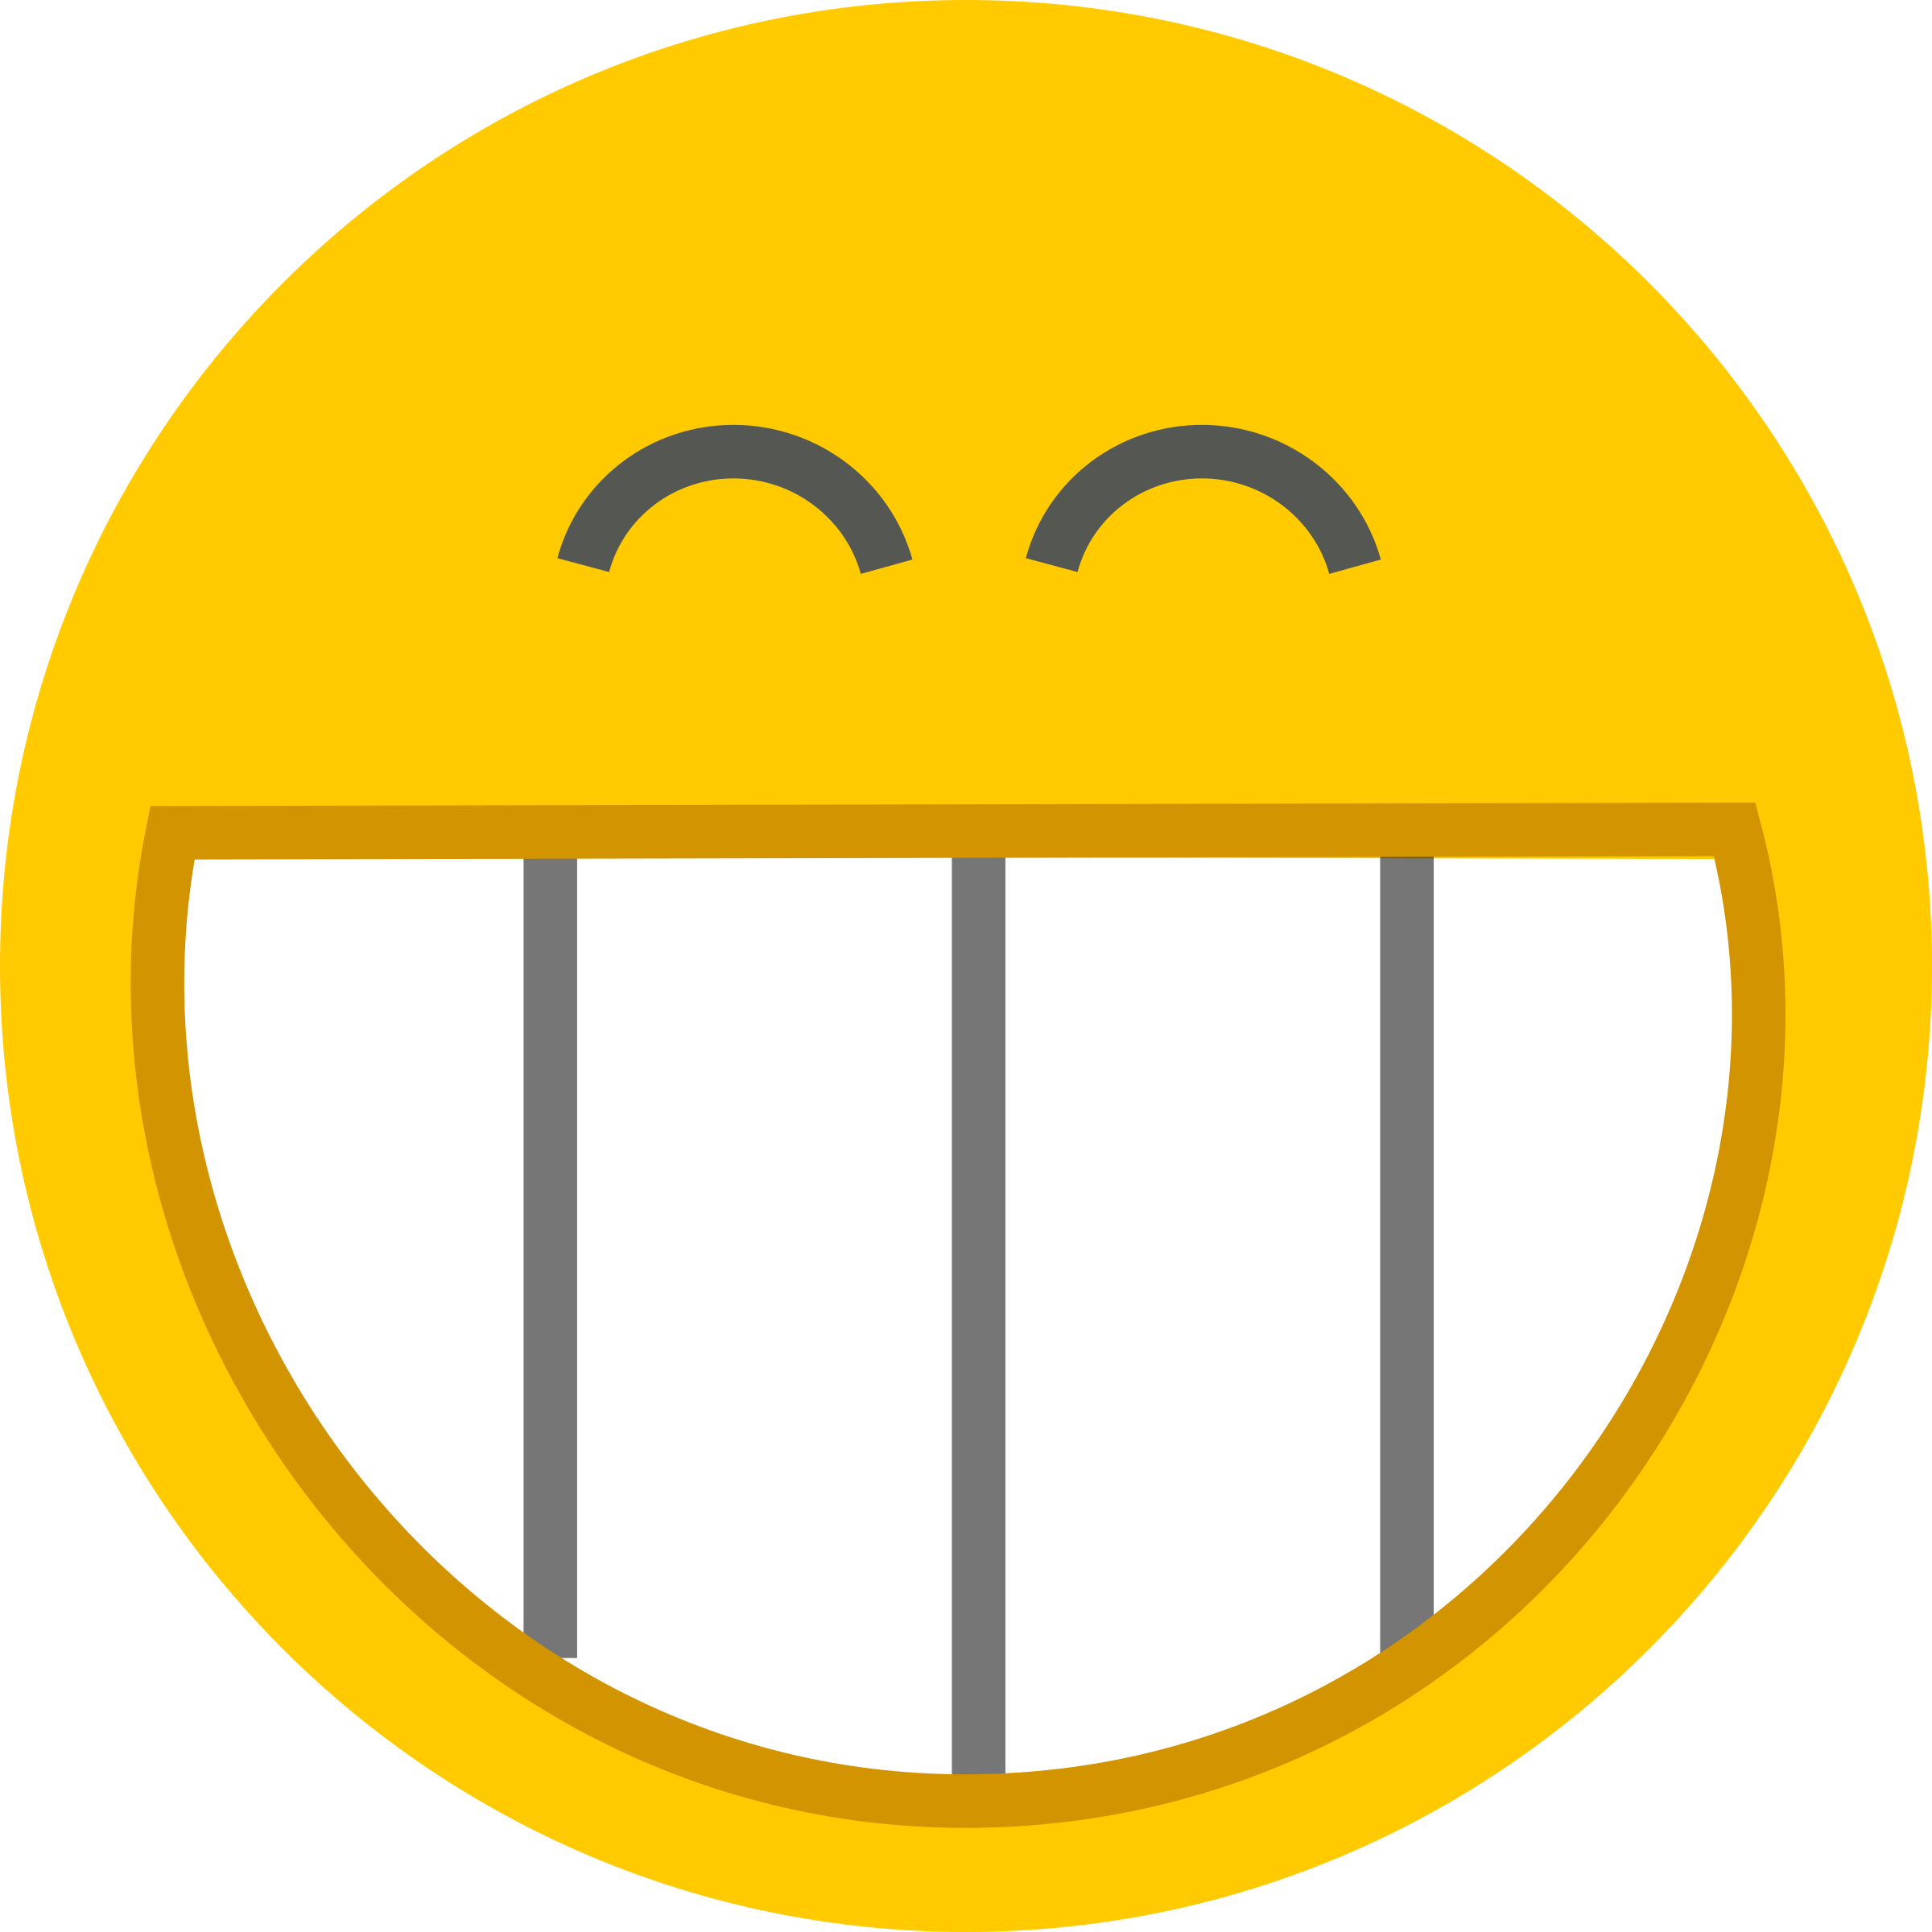 Mouth smile clip art free clipart images 3